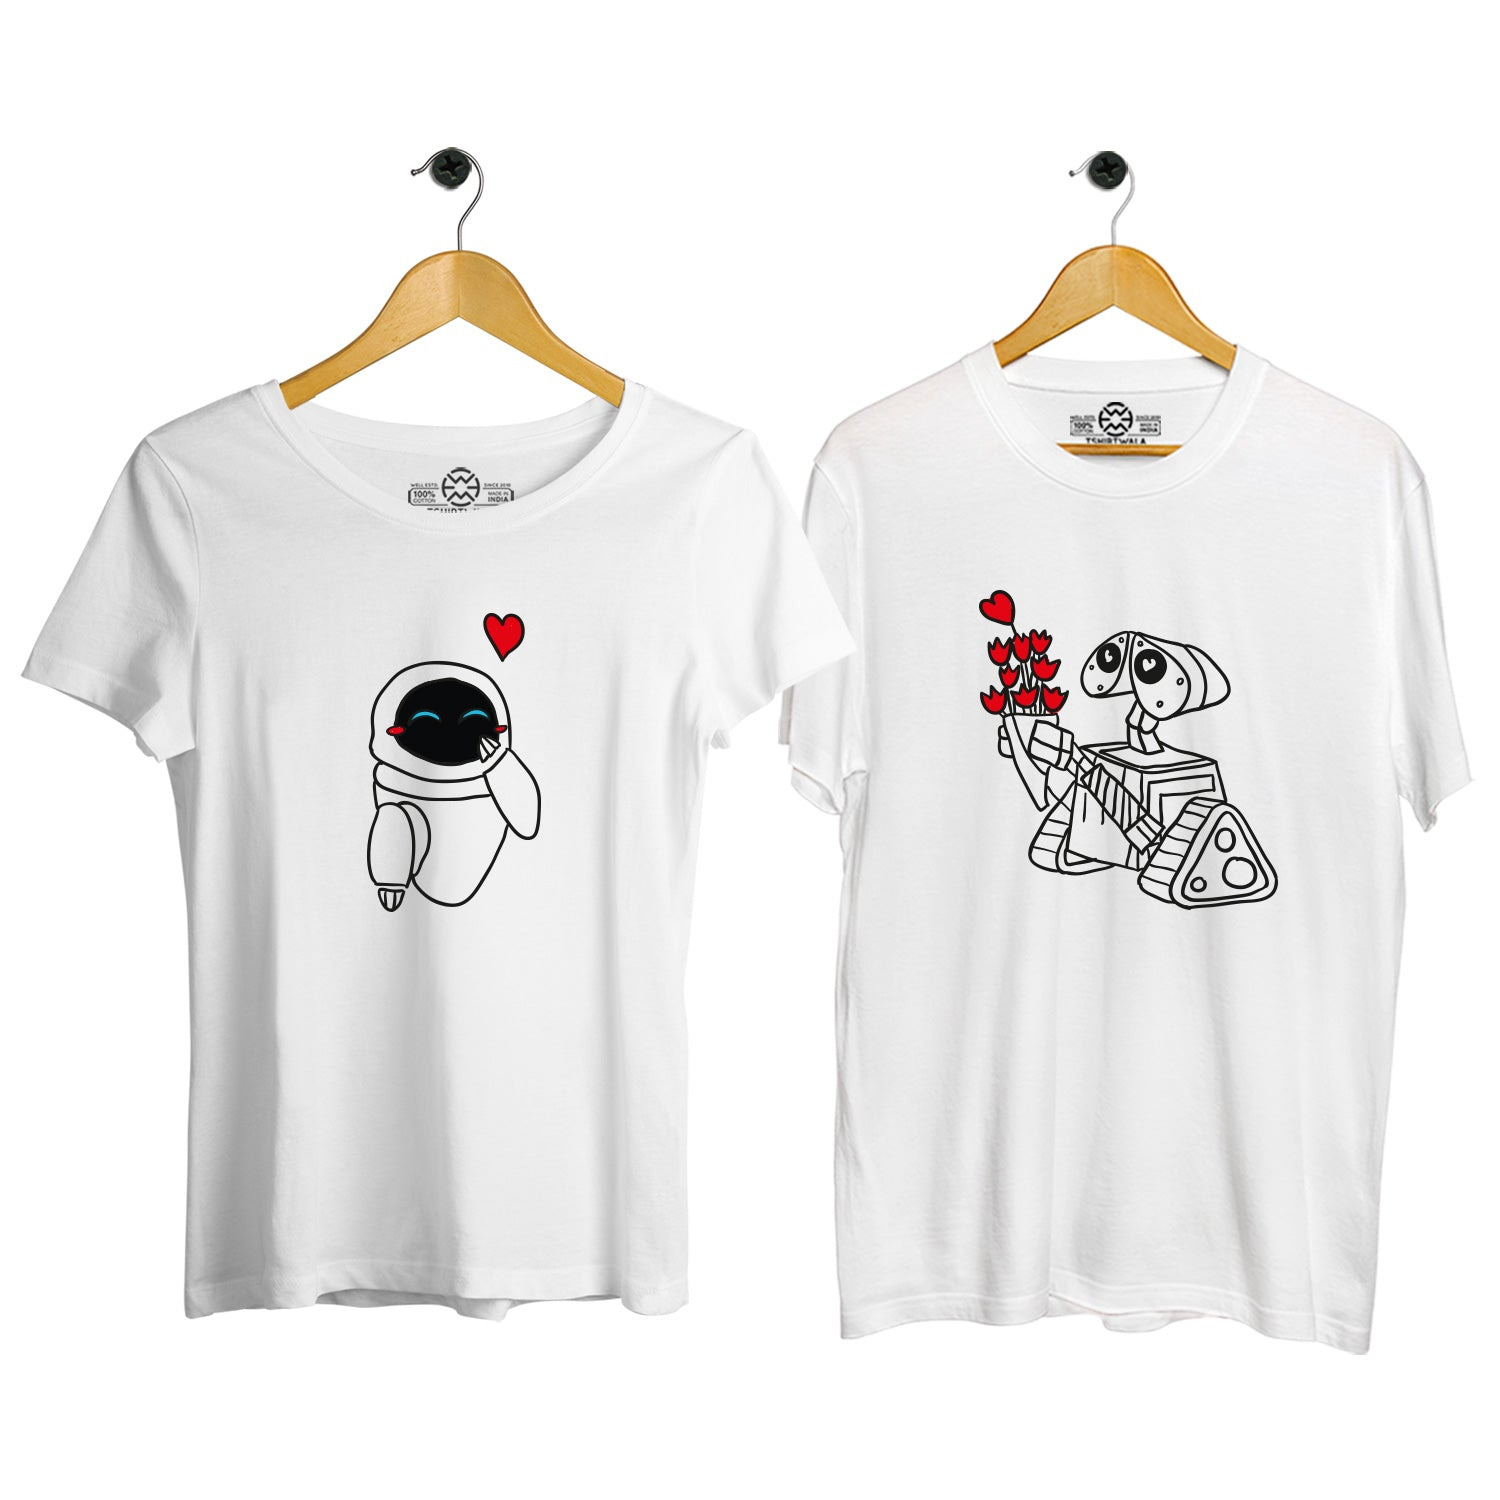 Wall-E and Eve couple tshirt